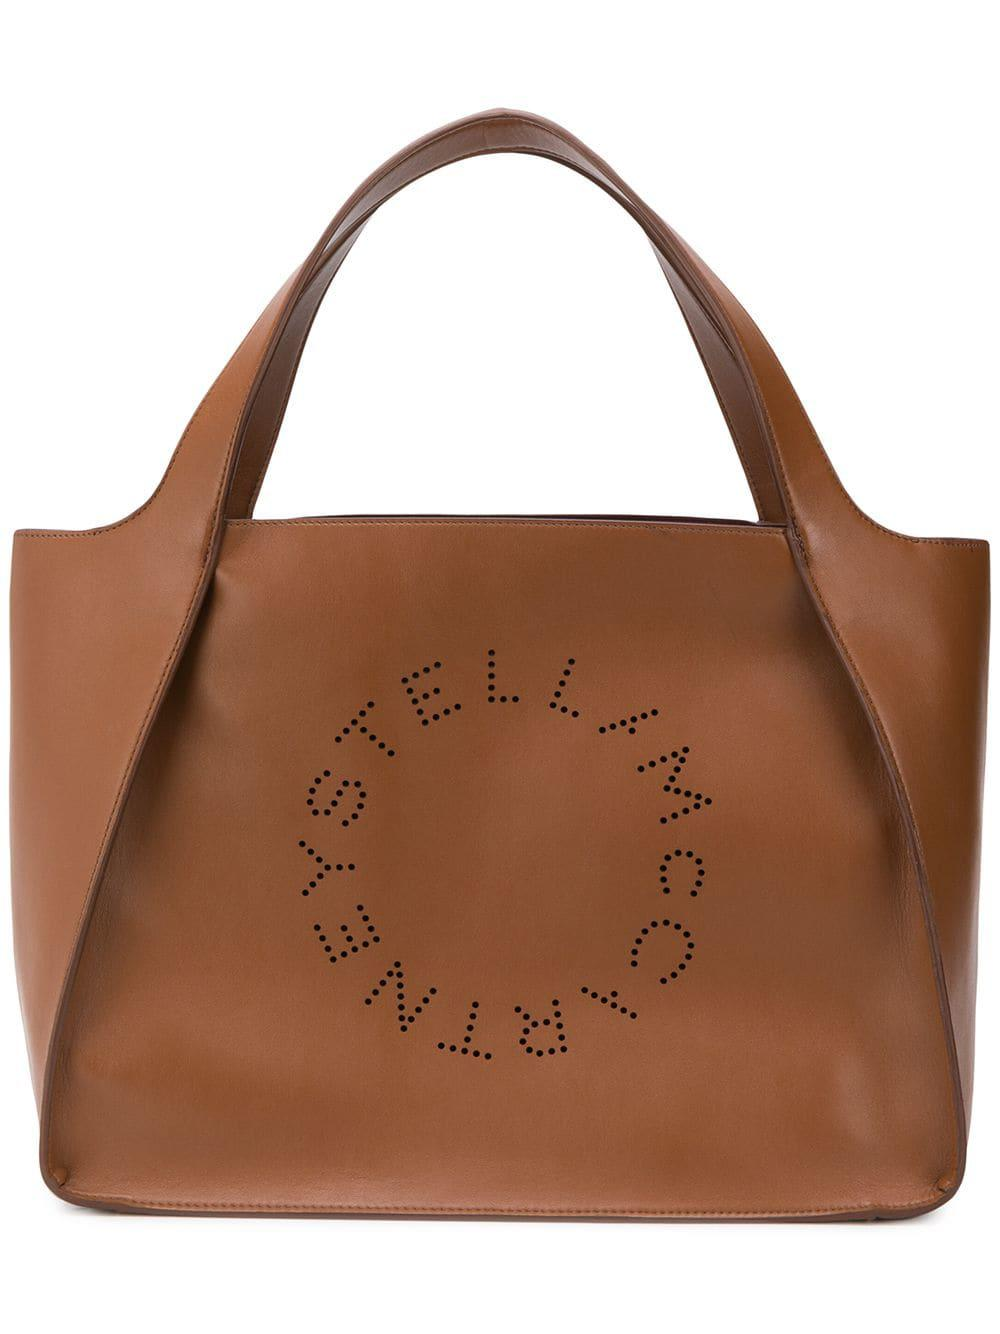 324b45e7b54ac Lyst - Stella Mccartney Alter Perforated Tote in Brown